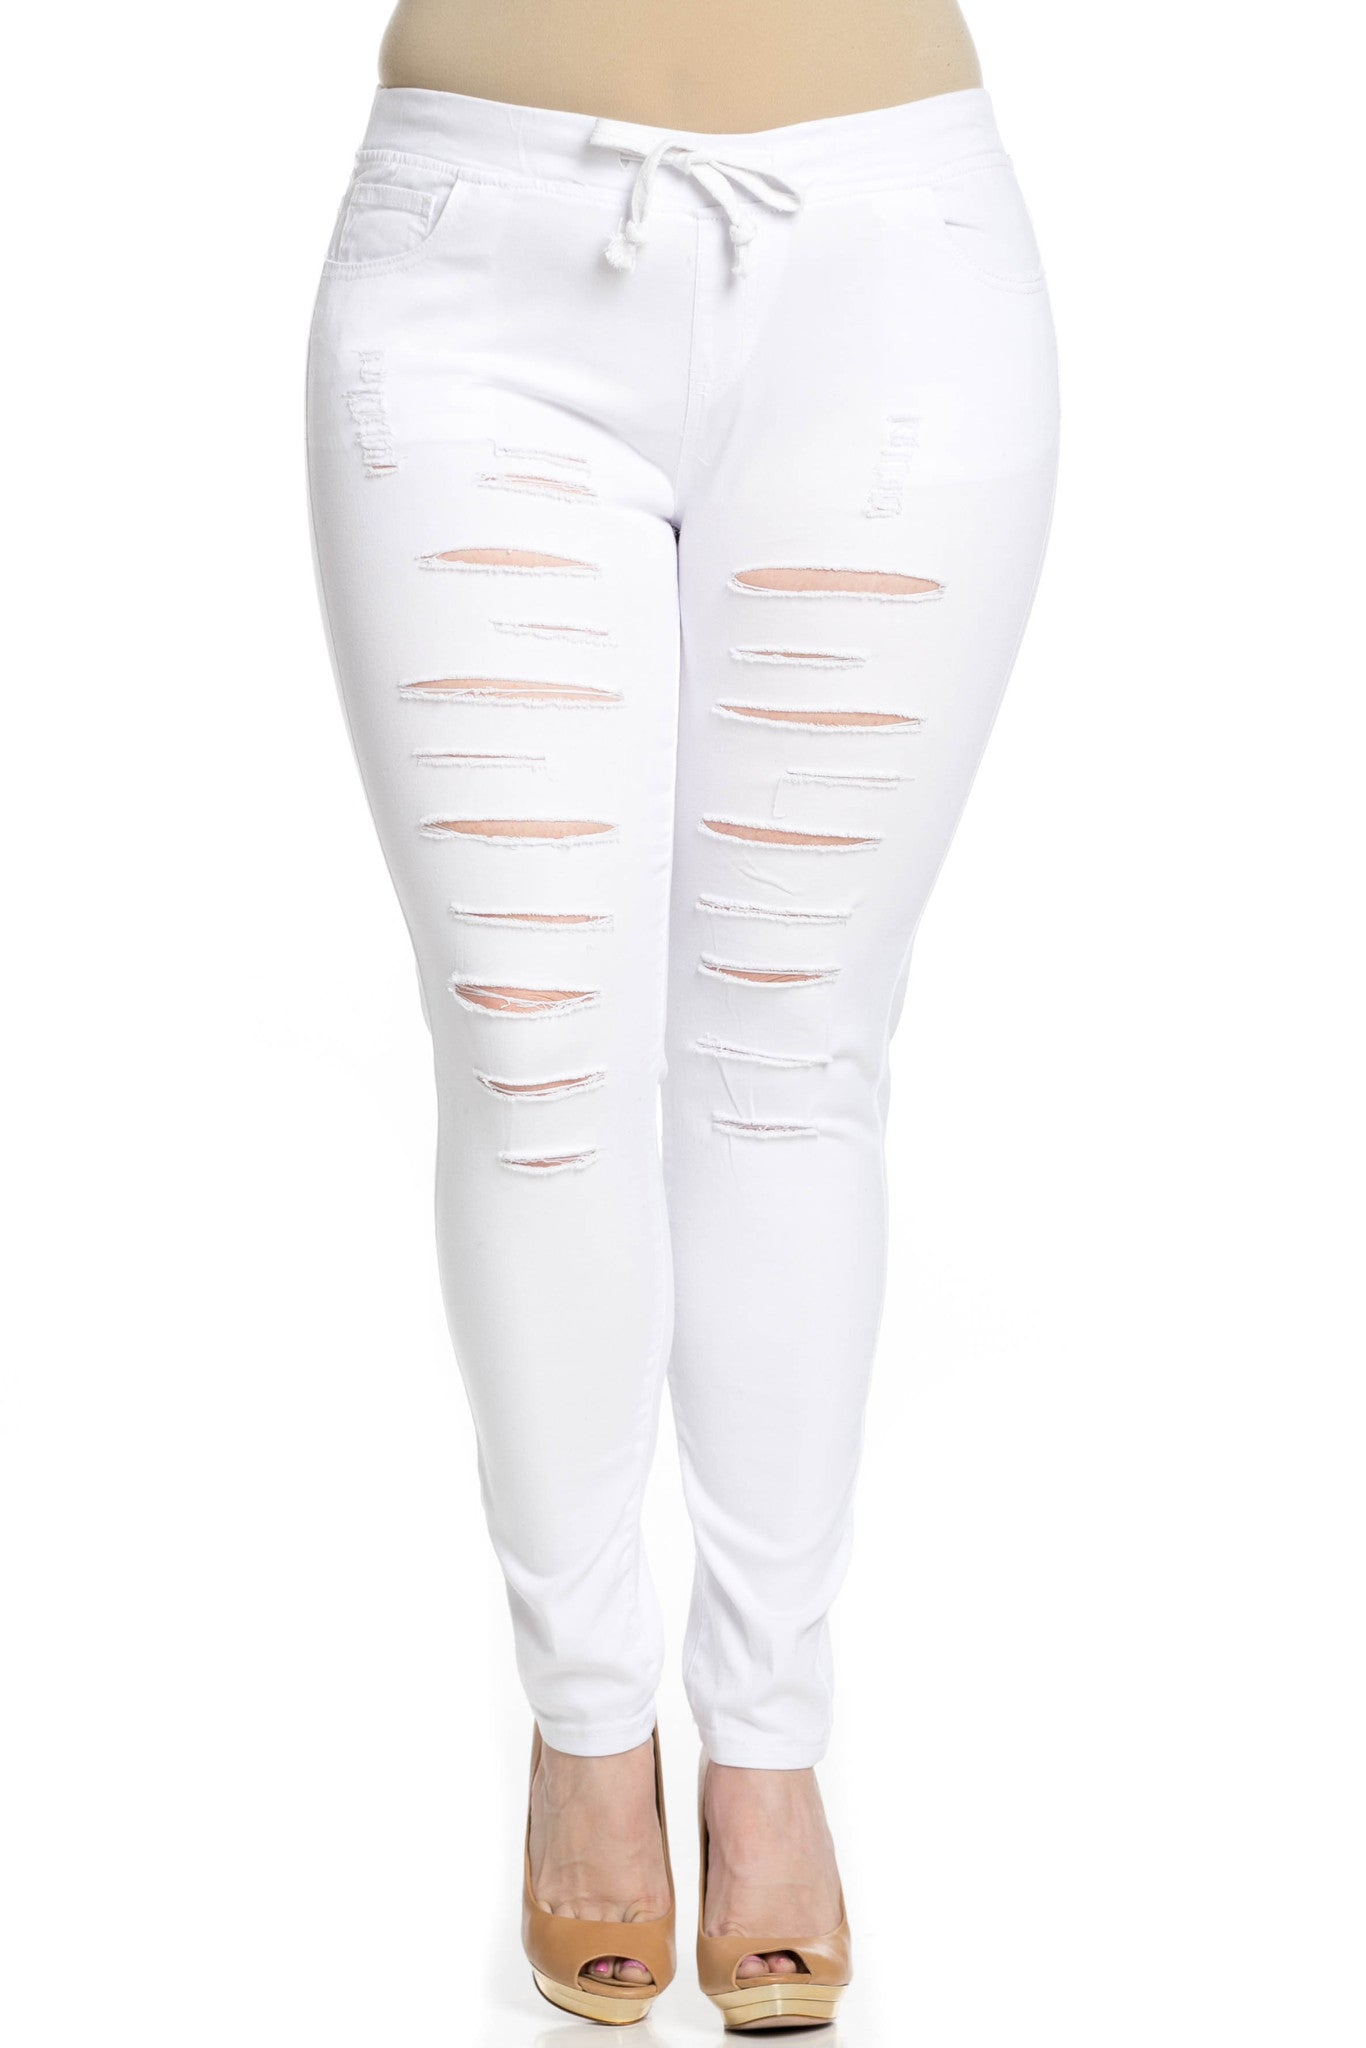 Distressed Skinny White Jogger Jeans - Pants - My Yuccie - 8